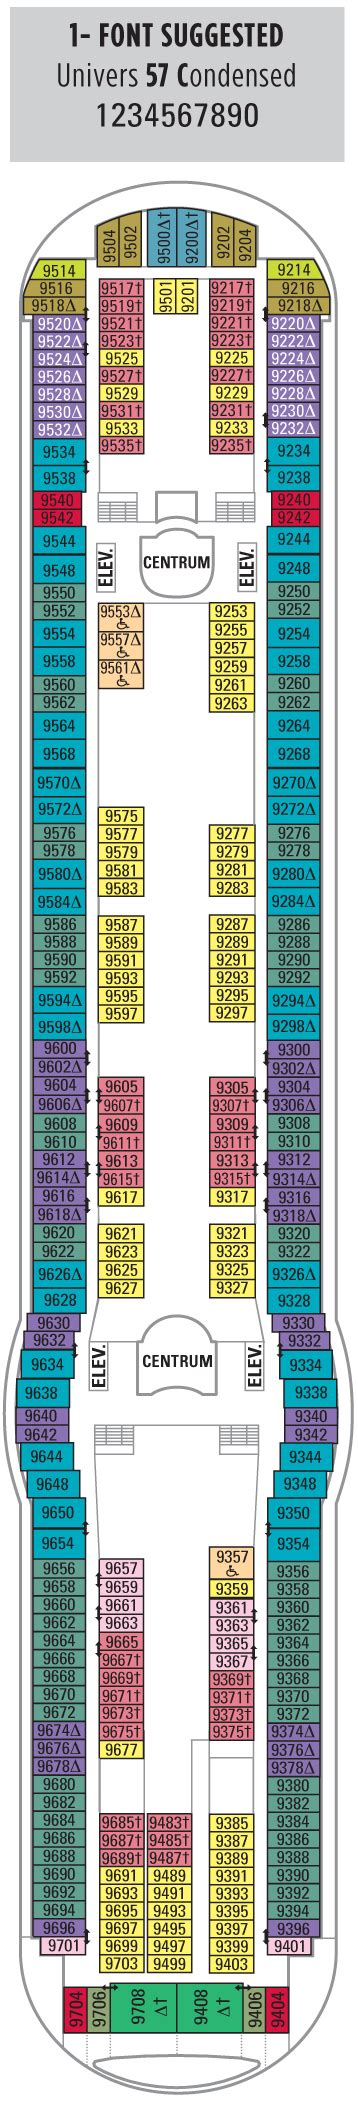 Radiance Of The Seas Deck Plan Pdf by Brilliance Of The Seas Deck Seven Royal Caribbean